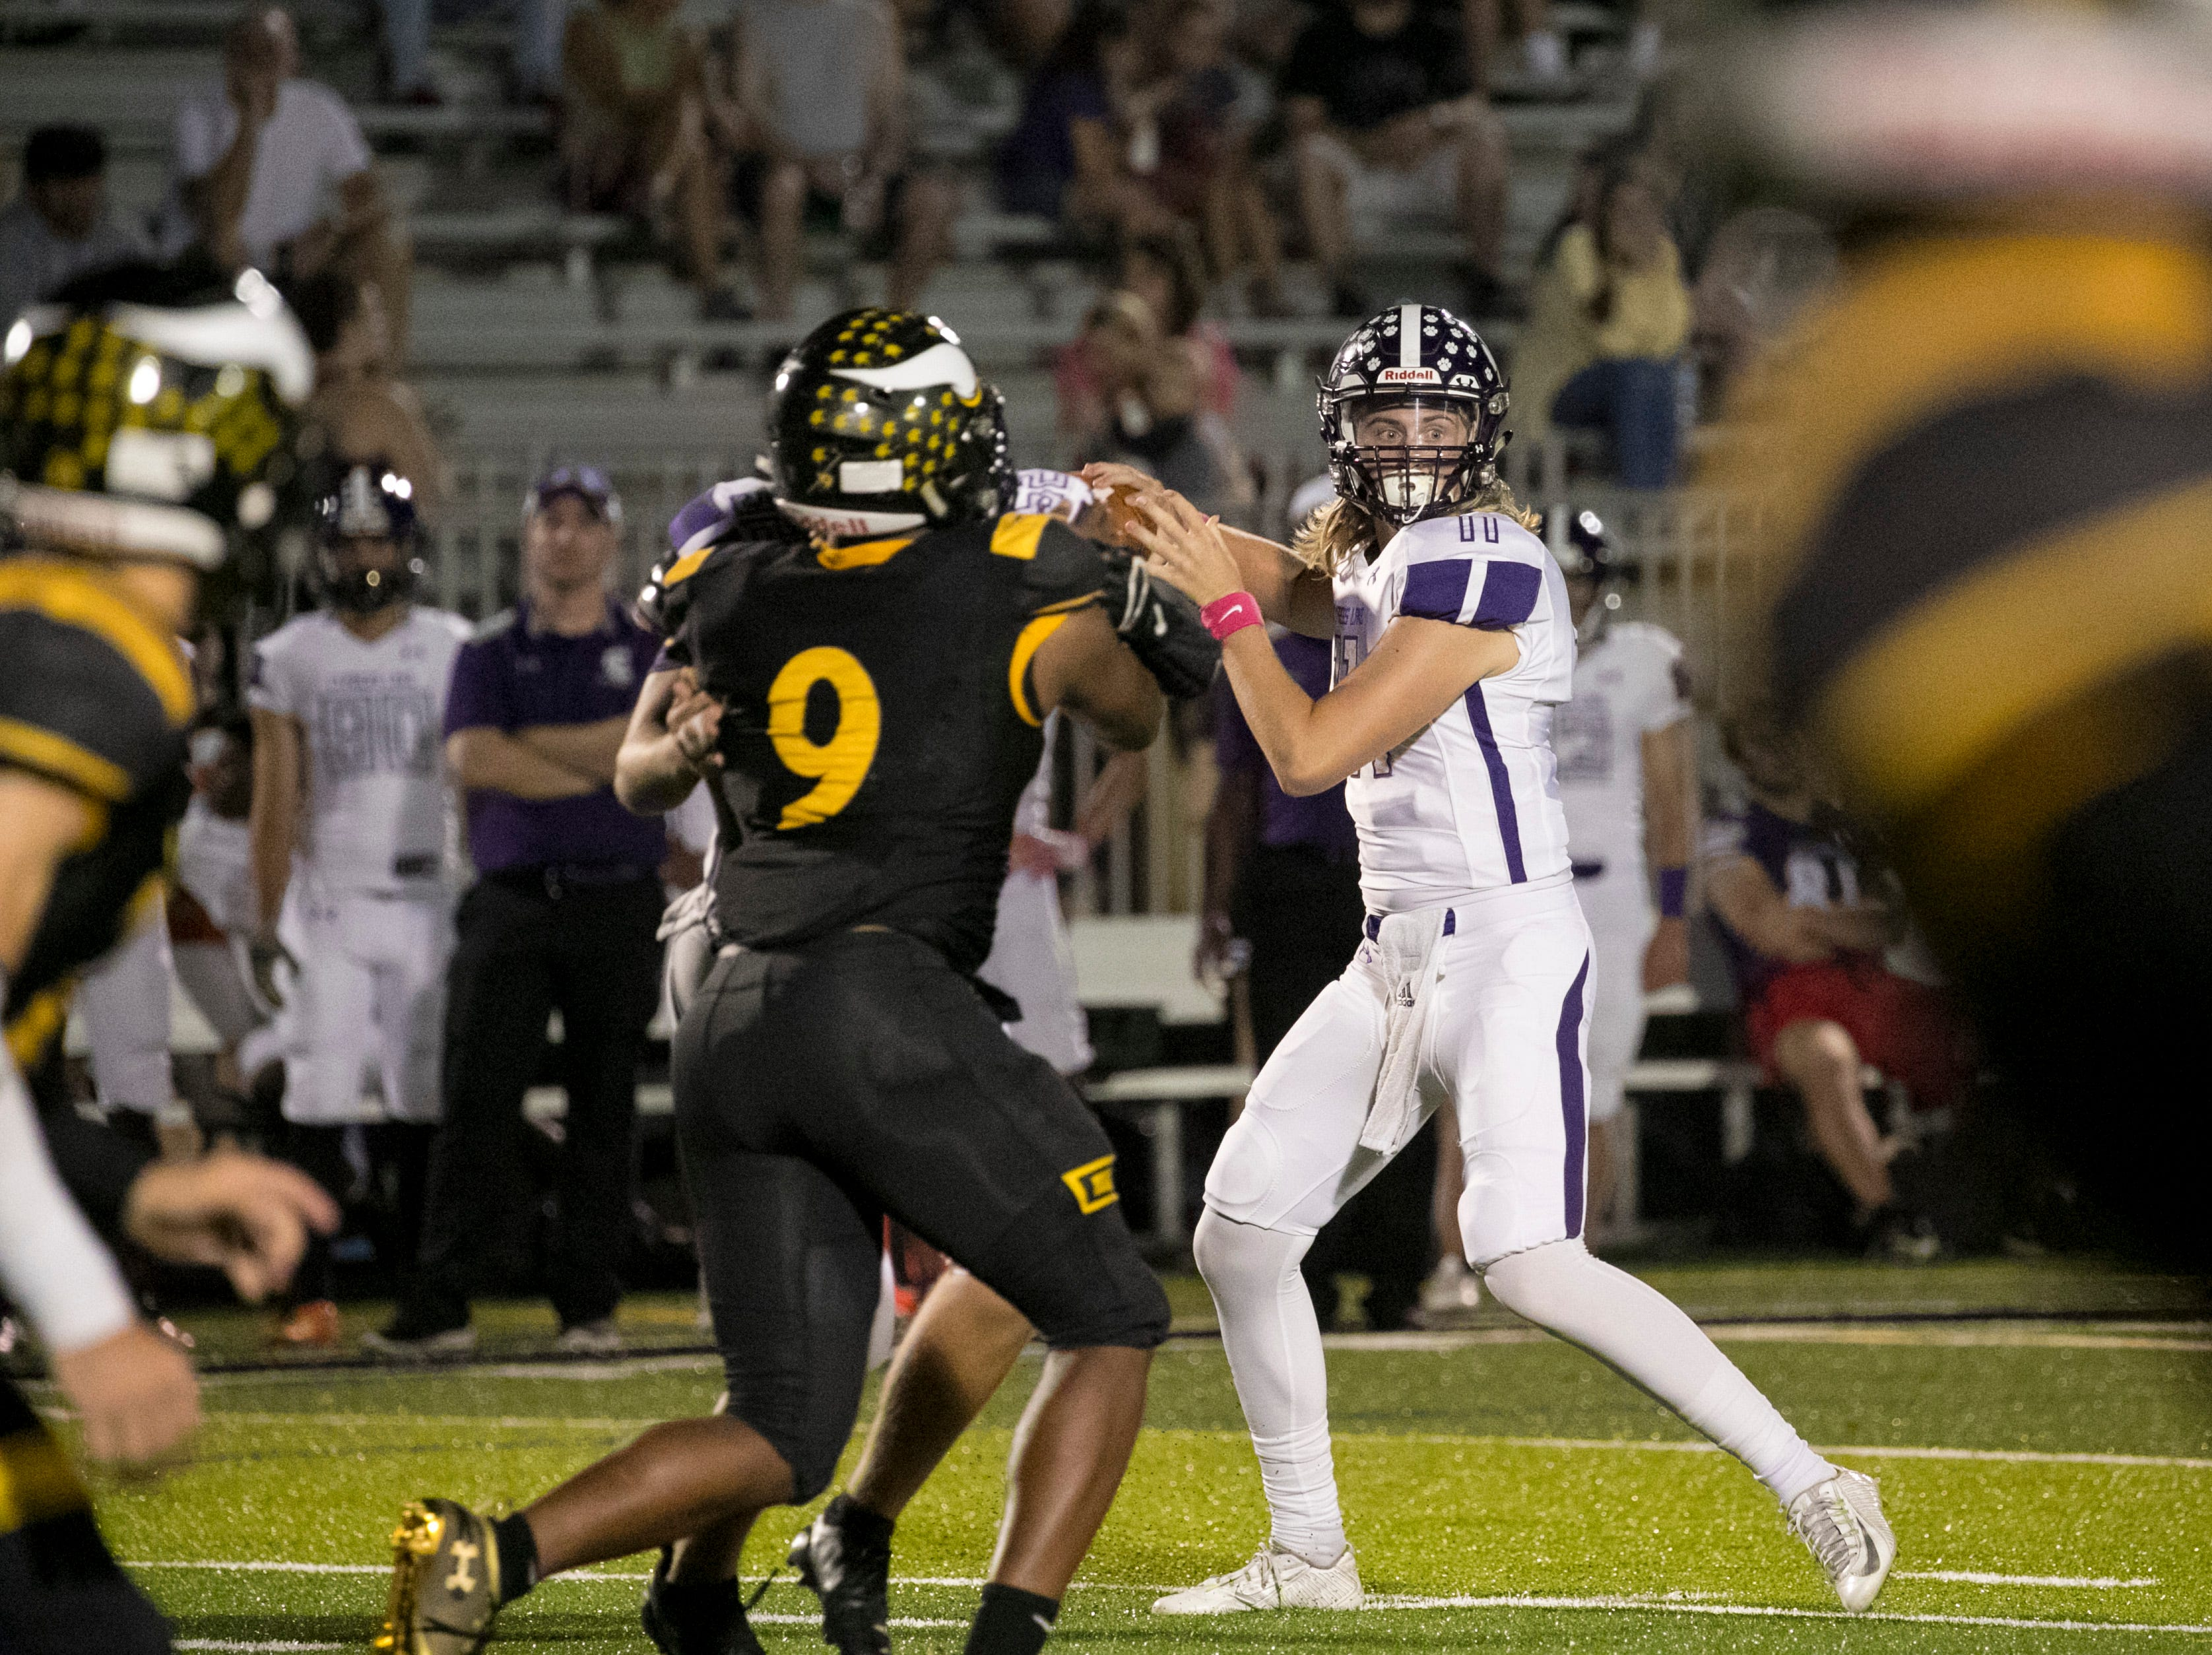 Cypress Lake quarterback C.J. Shedd looks to throw the ball against Bishop Verot on Friday night, October 5, 2018, in Fort Myers.